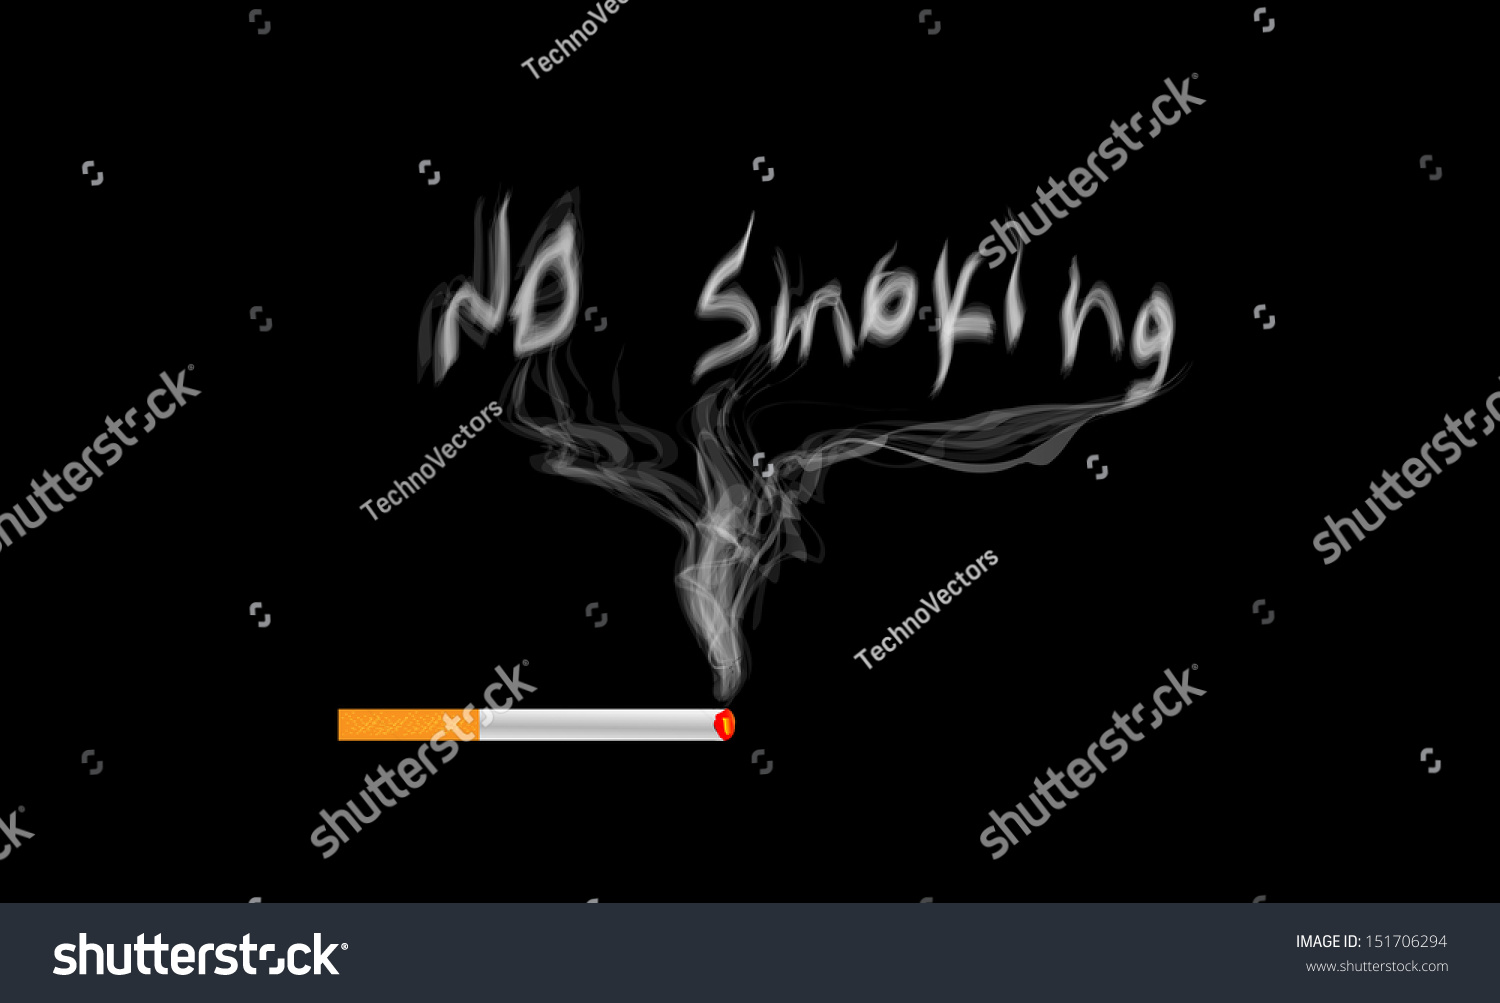 Illustration no smoking sign symbol text stock illustration illustration of no smoking sign and symbol the text written with smoke buycottarizona Images